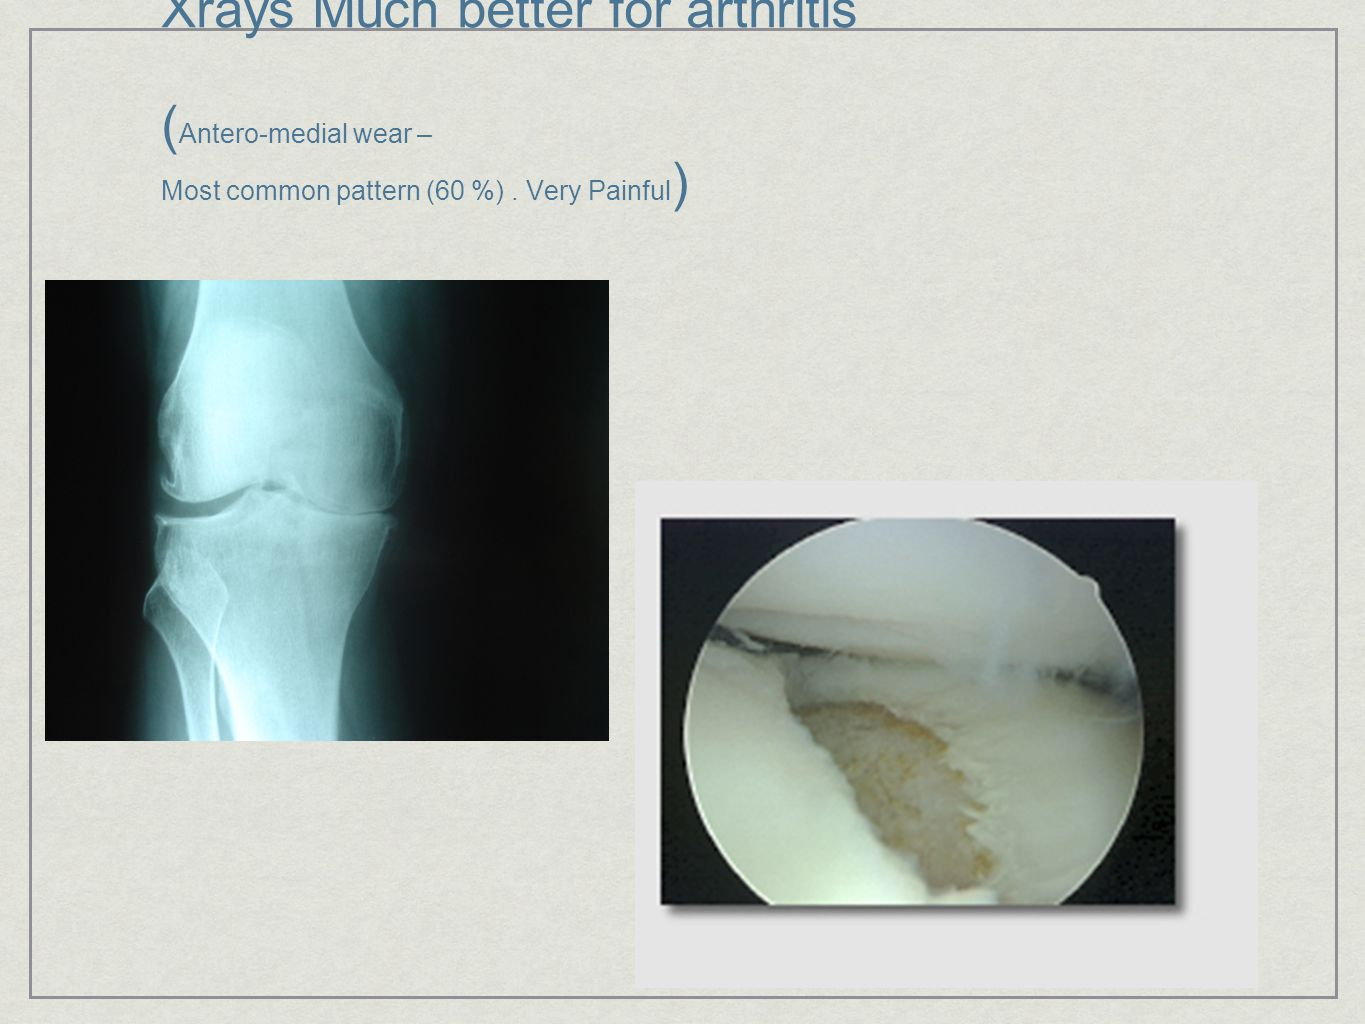 Xrays Much better for arthritis ( Antero-medial wear – Most common pattern (60 %). Very Painful )